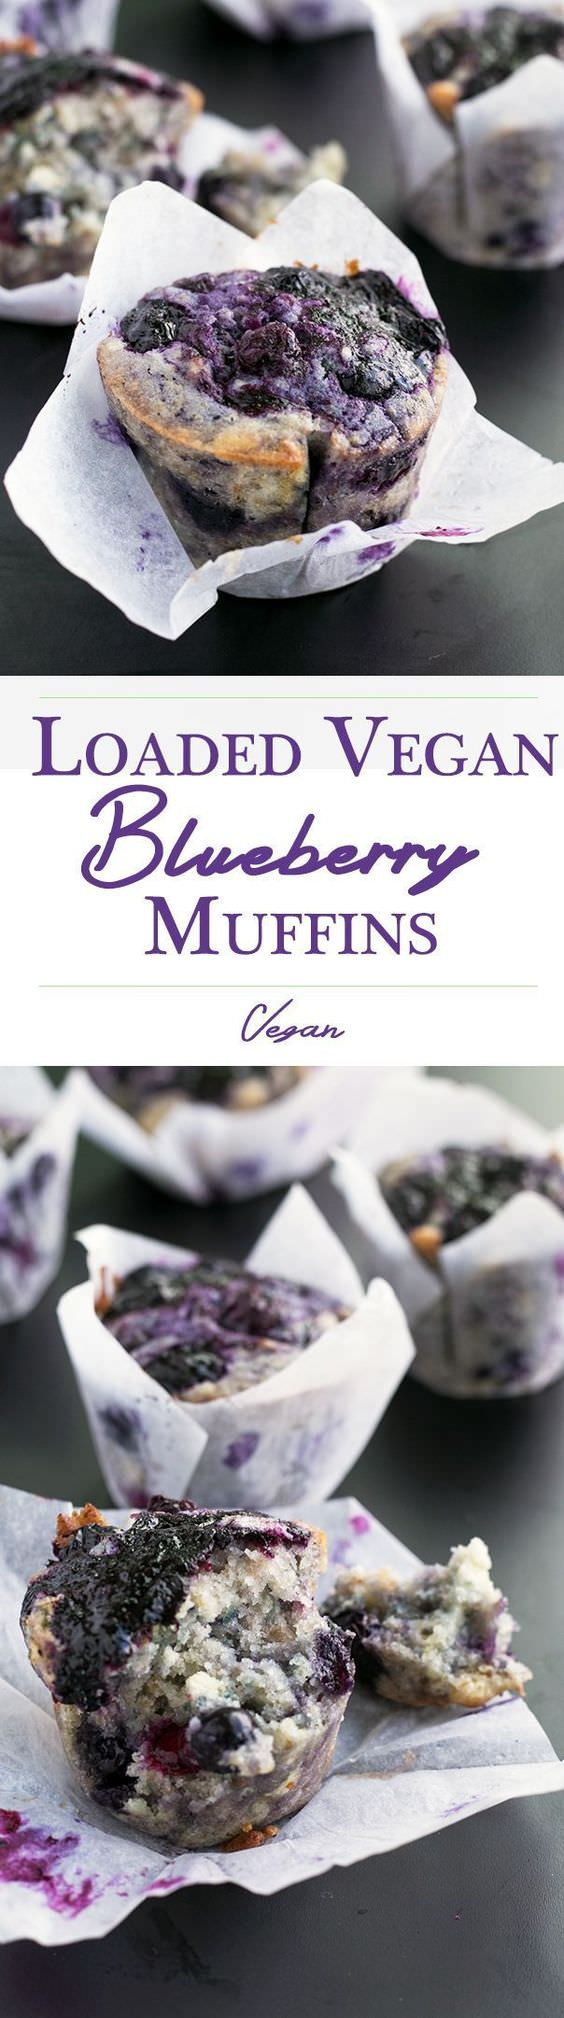 "Fully loaded Vegan Blueberry Muffins with a lemon zest topping and homemade Blueberry Jam Swirl.    I love the recipe for these Loaded Vegan Blueberry Muffins because it incorporates Blueberries in 3 different ways. The original recipe calls for a Blueberry Jam to be made and then swirled into Blueberry studded muffins. I go one extra step by incorporating Lorann Blueberry Emulsion Oil into the mix. You don't have to, but if you do, people will taste your muffins (giggle) and go ""Wow, these taste like Blueberry Muffins on Blueberry steroids!"". Always a good thing.  Prep Time: 15 min  Cook Time: 20 min  Total Time: 35 min  Ingredients  Lemon Sugar Topping:  1/3 cup Sugar 11/2 teaspoons finely grated zest from 1 Lemon Muffins:  1 cup Frozen Blueberries (for jam) 1 tablespoon Sugar 1/2 cup frozen Blueberries 1/2 cup fresh Blueberries 1 1/8 cup Sugar 2 1/2 cups All Purpose Flour 2 1/2 teaspoons baking powder 1 teaspoon Himalayan Pink Salt 2 Flax Eggs (see note) 1/4 cup melted Coconut Oil 1/3 cup Vegetable Oil 1 cup Almond Milk ""buttermilk"" (see note) 11/2 teaspoons Vanilla Extract Few drops of Lorann Blueberry Emulsion Oil Visit Crazy Vegan Kitchen to read the full post."